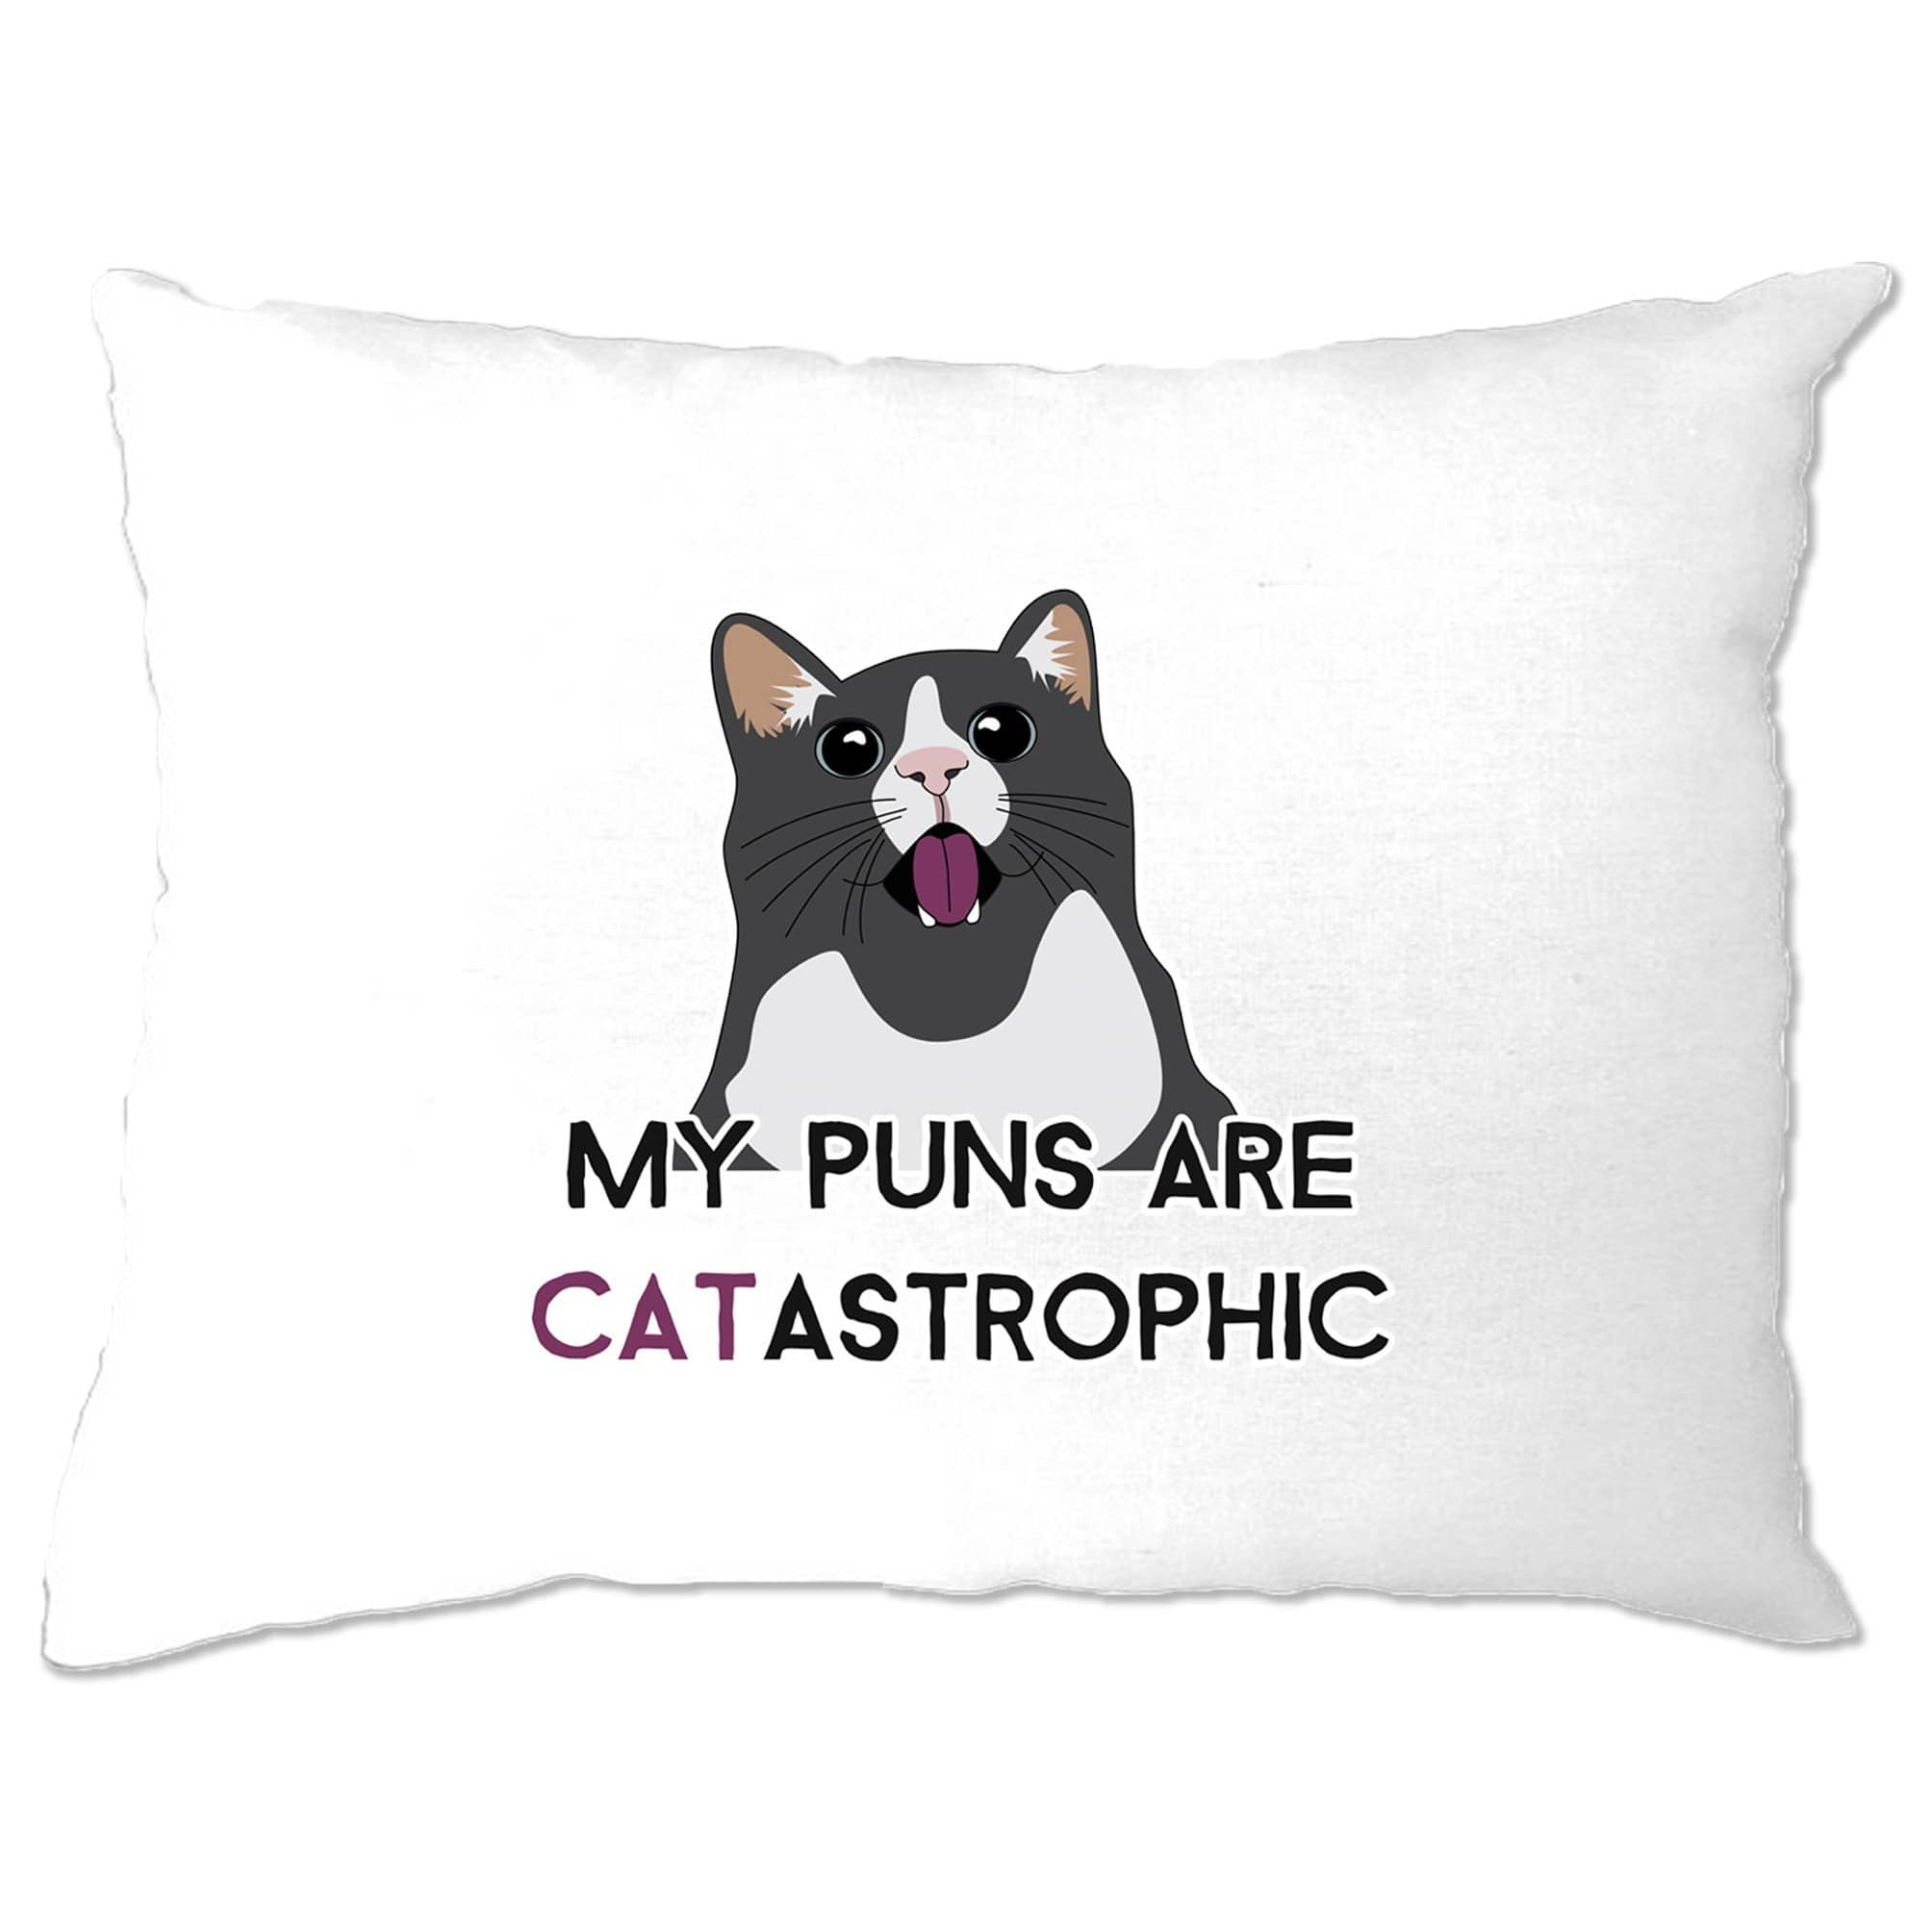 Novelty Cat Pillow Case My Puns Are Catastrophic Joke